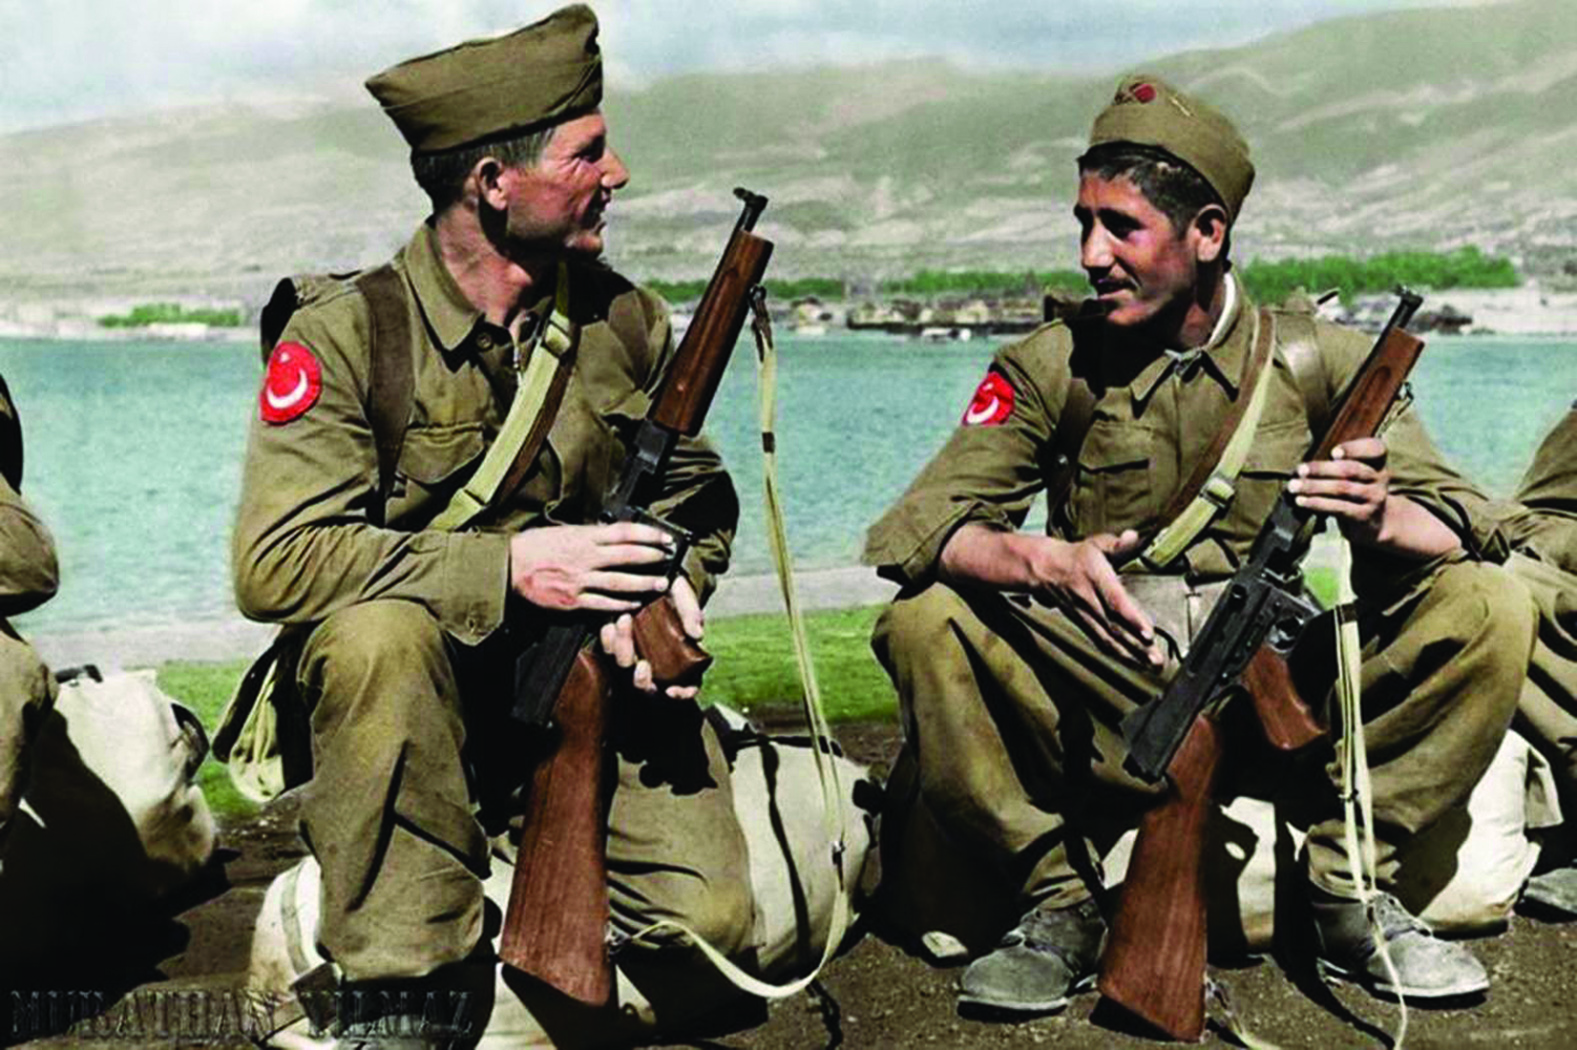 38_May 2018 Turks in Korea 1950.jpg